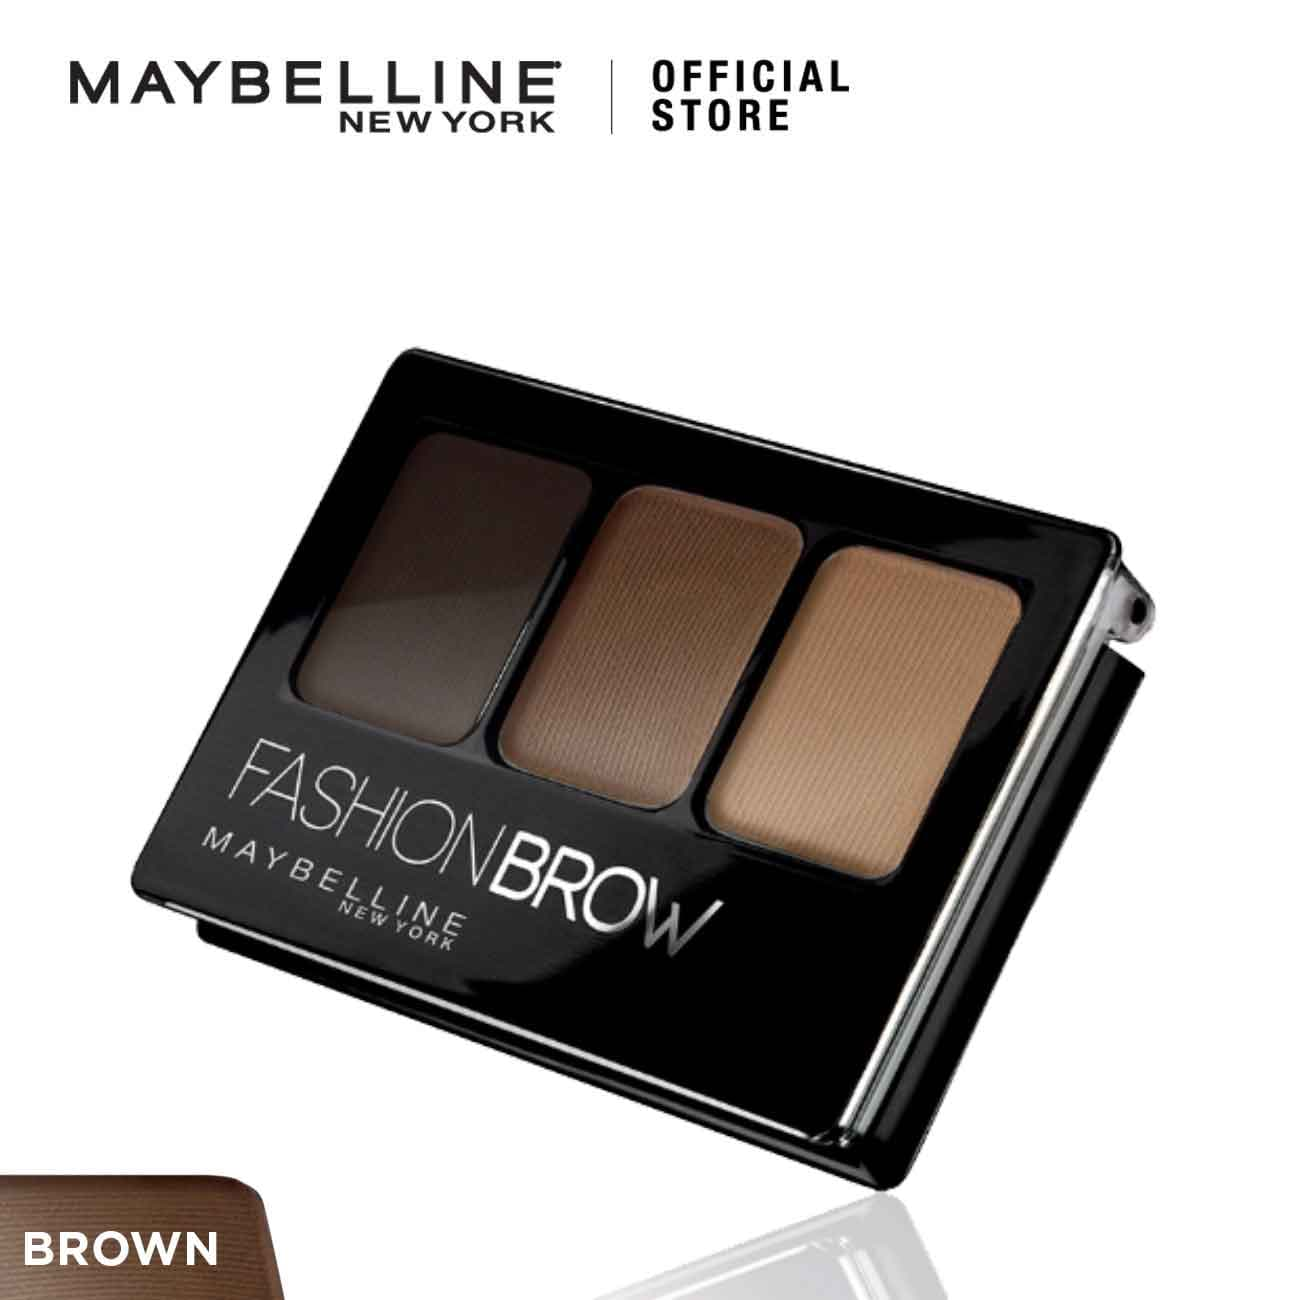 Maybelline Fashion Brow Pallette Make Up - Brown thumbnail